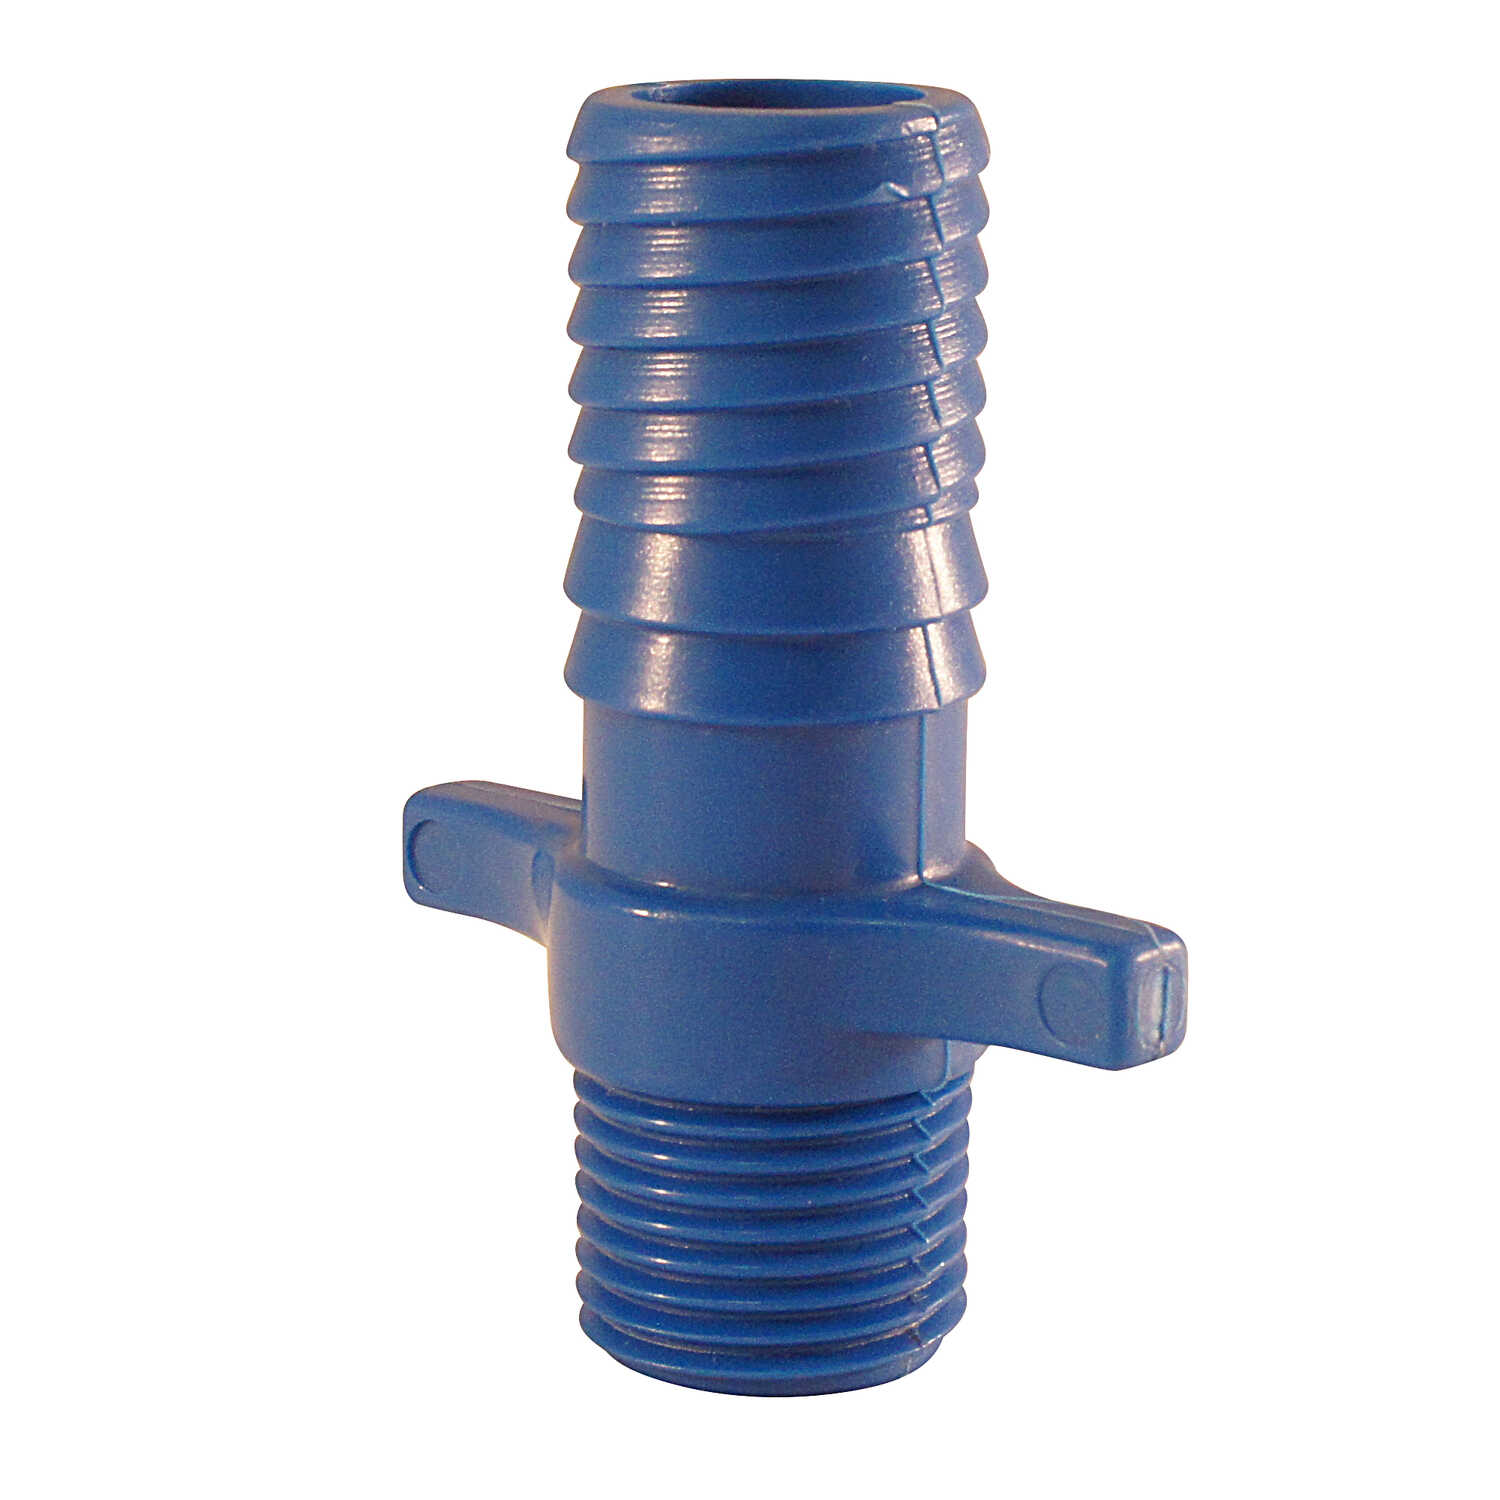 Blue Twisters  3/4 in. MPT   x 1 in. Dia. Insert  Polypropylene  Male Adapter